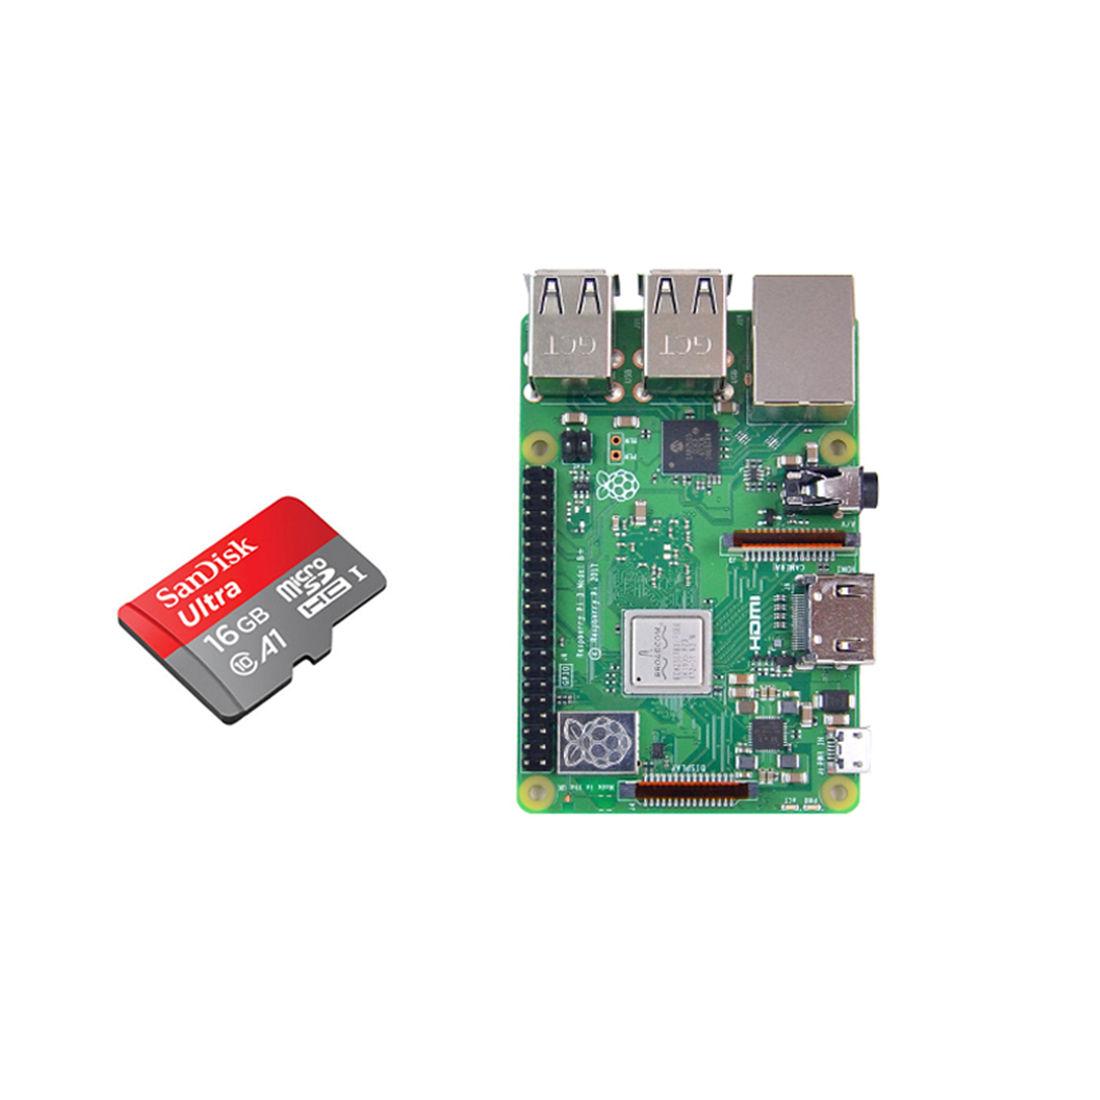 Programmable Robots Development Board With 16G Memory Card For Raspberry Pi 4 (1G/2G Running Memory)